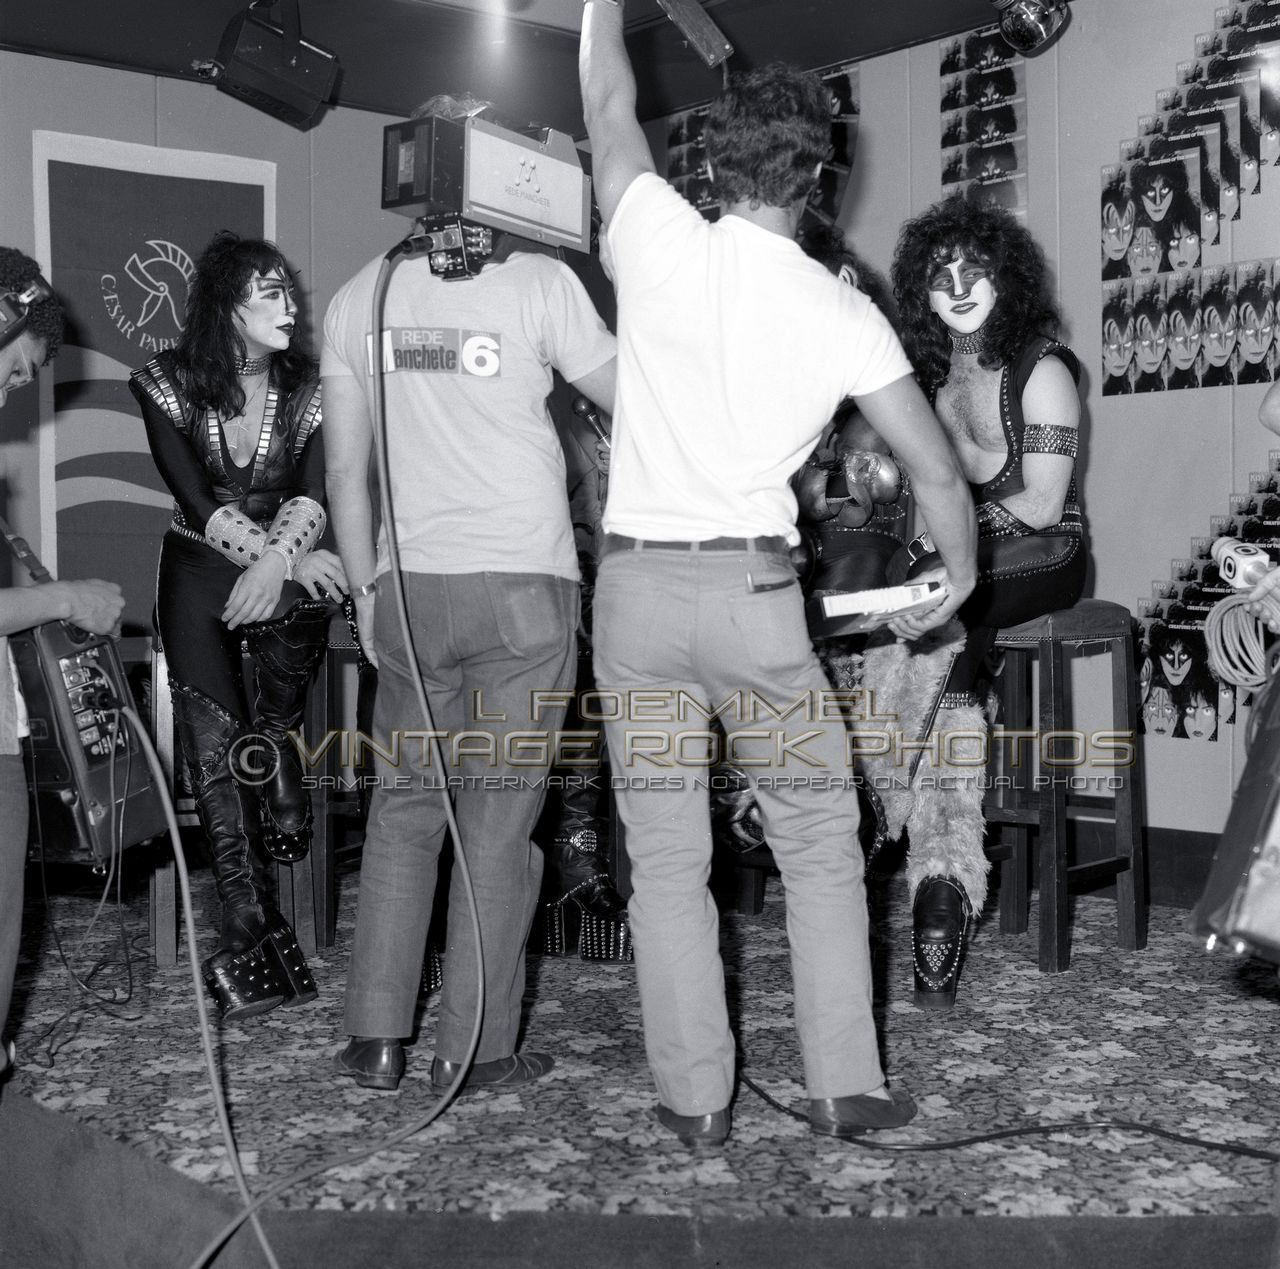 kiss 16x20 inch poster size photos set of 6 candid 83